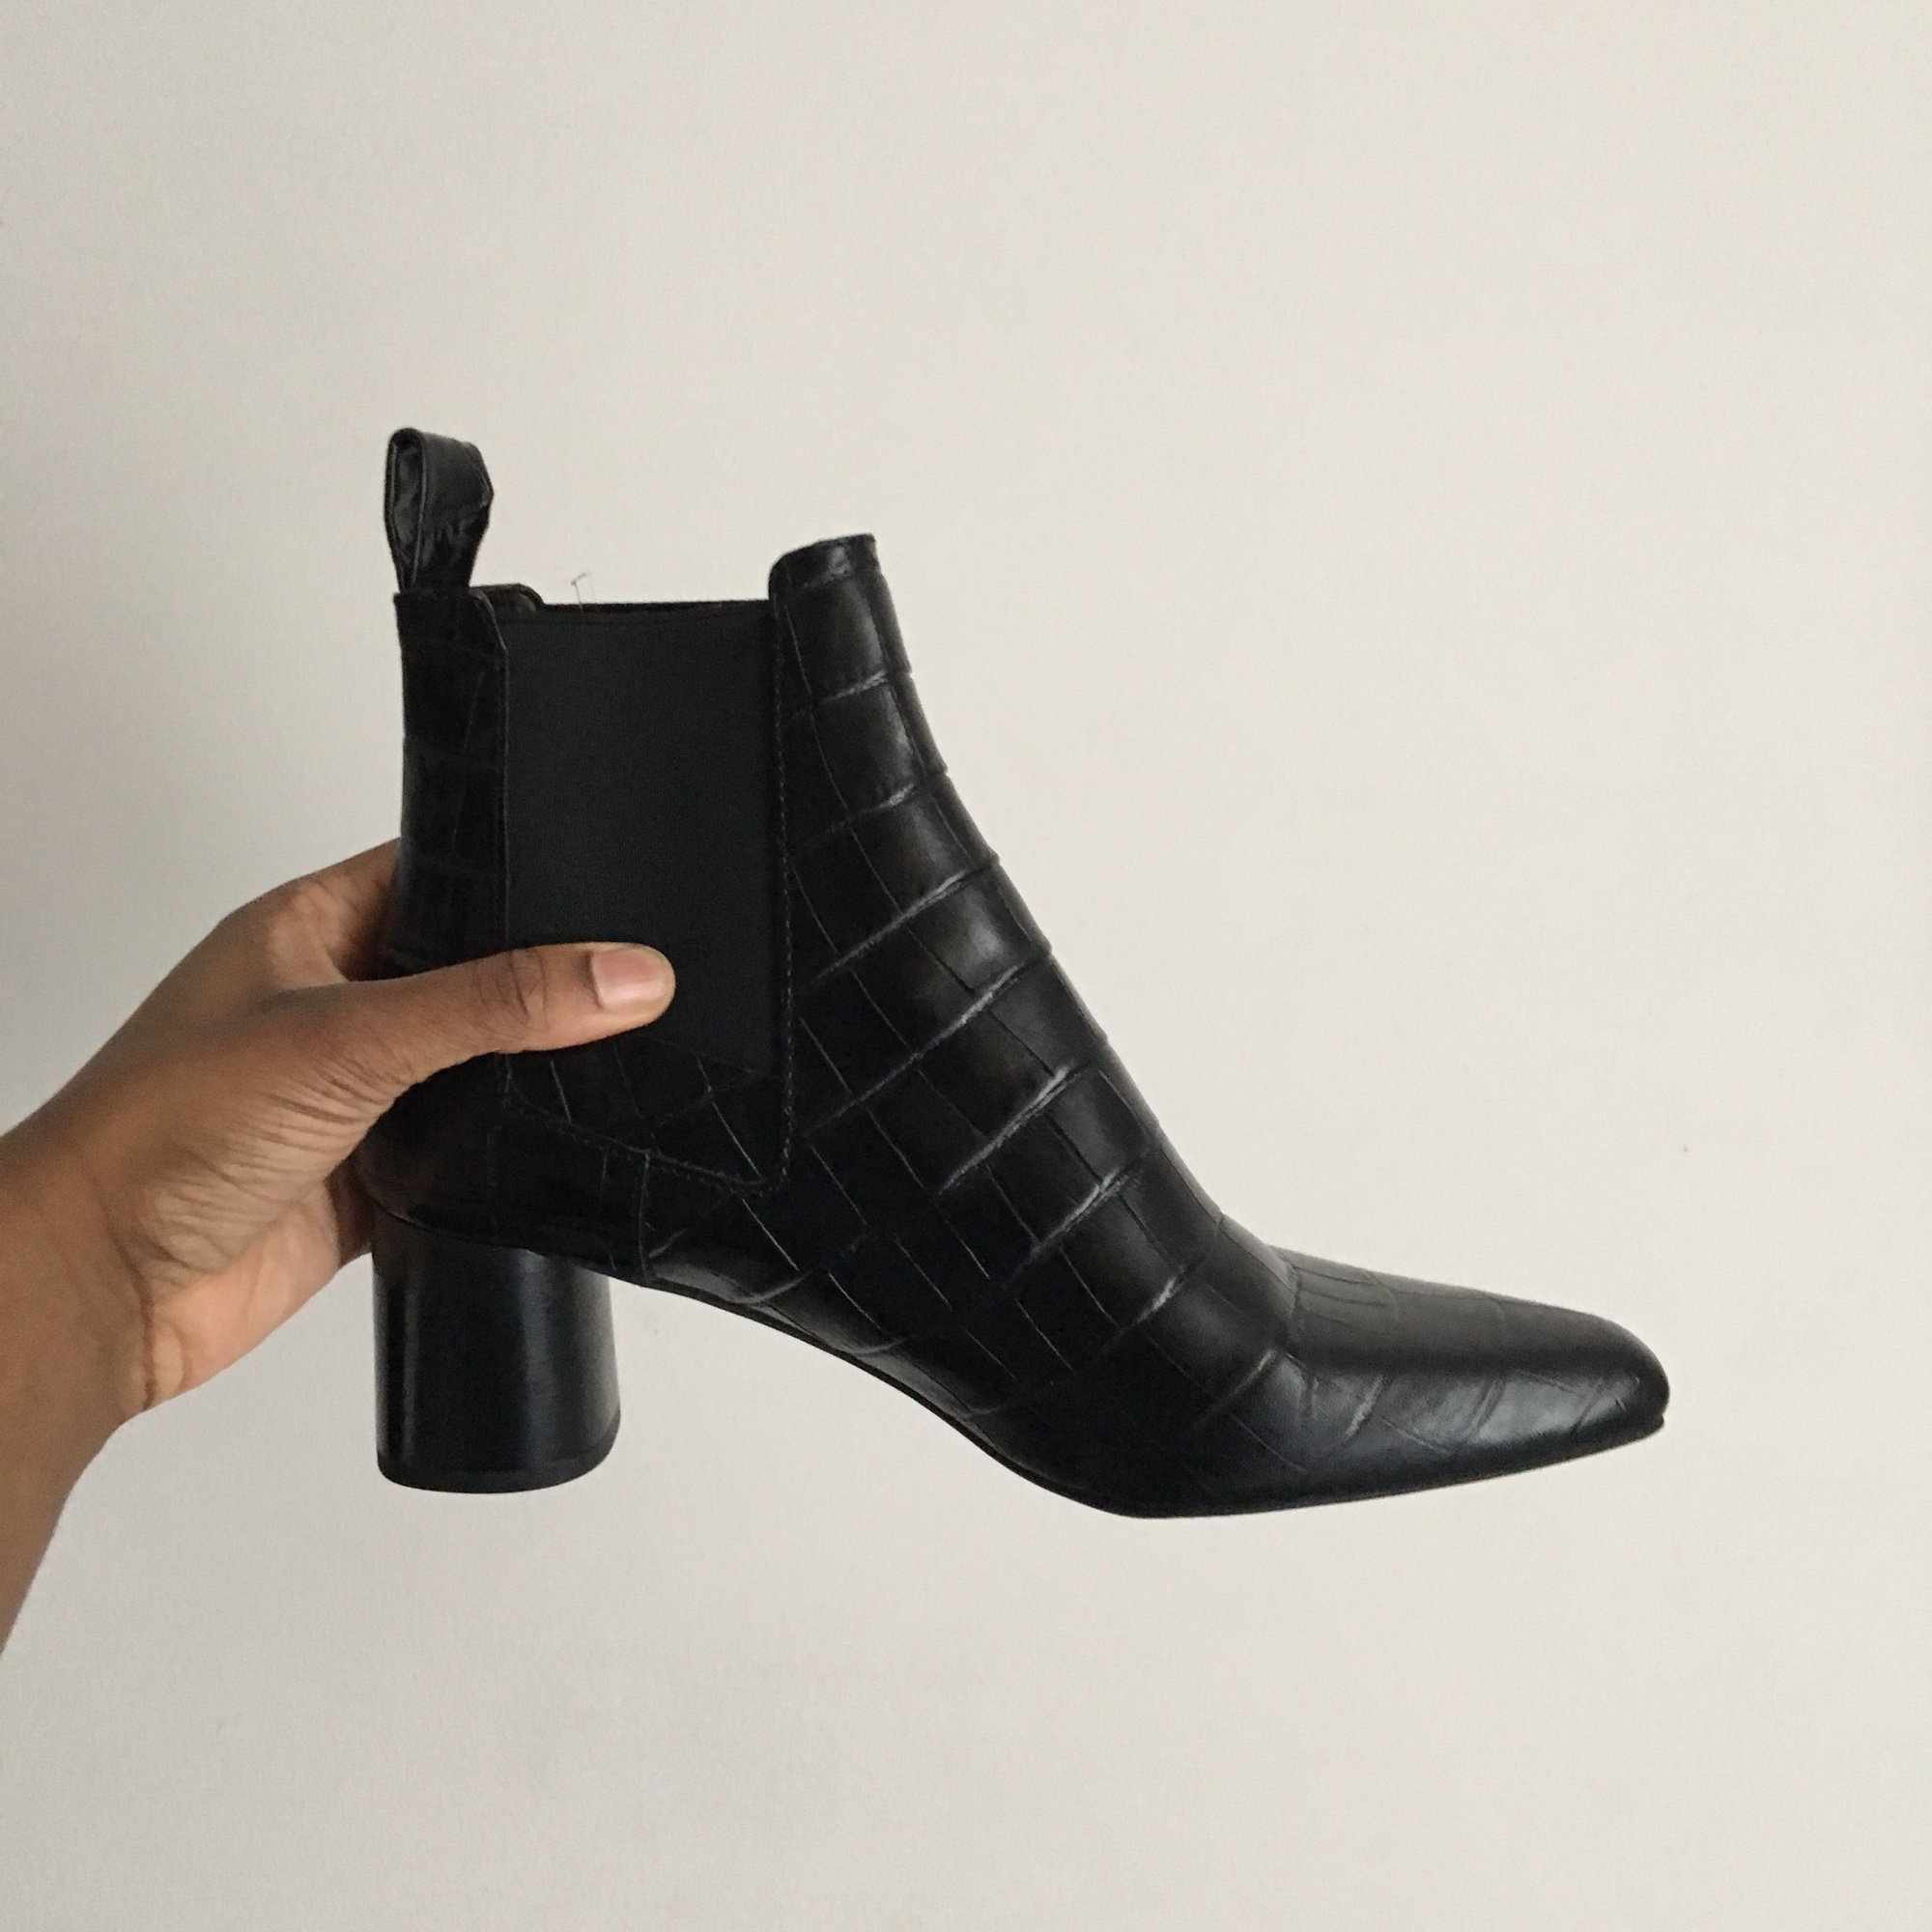 1a52f9d7f8a ZARA leather high heel ankle boots / UK 7 /Brand... - Depop